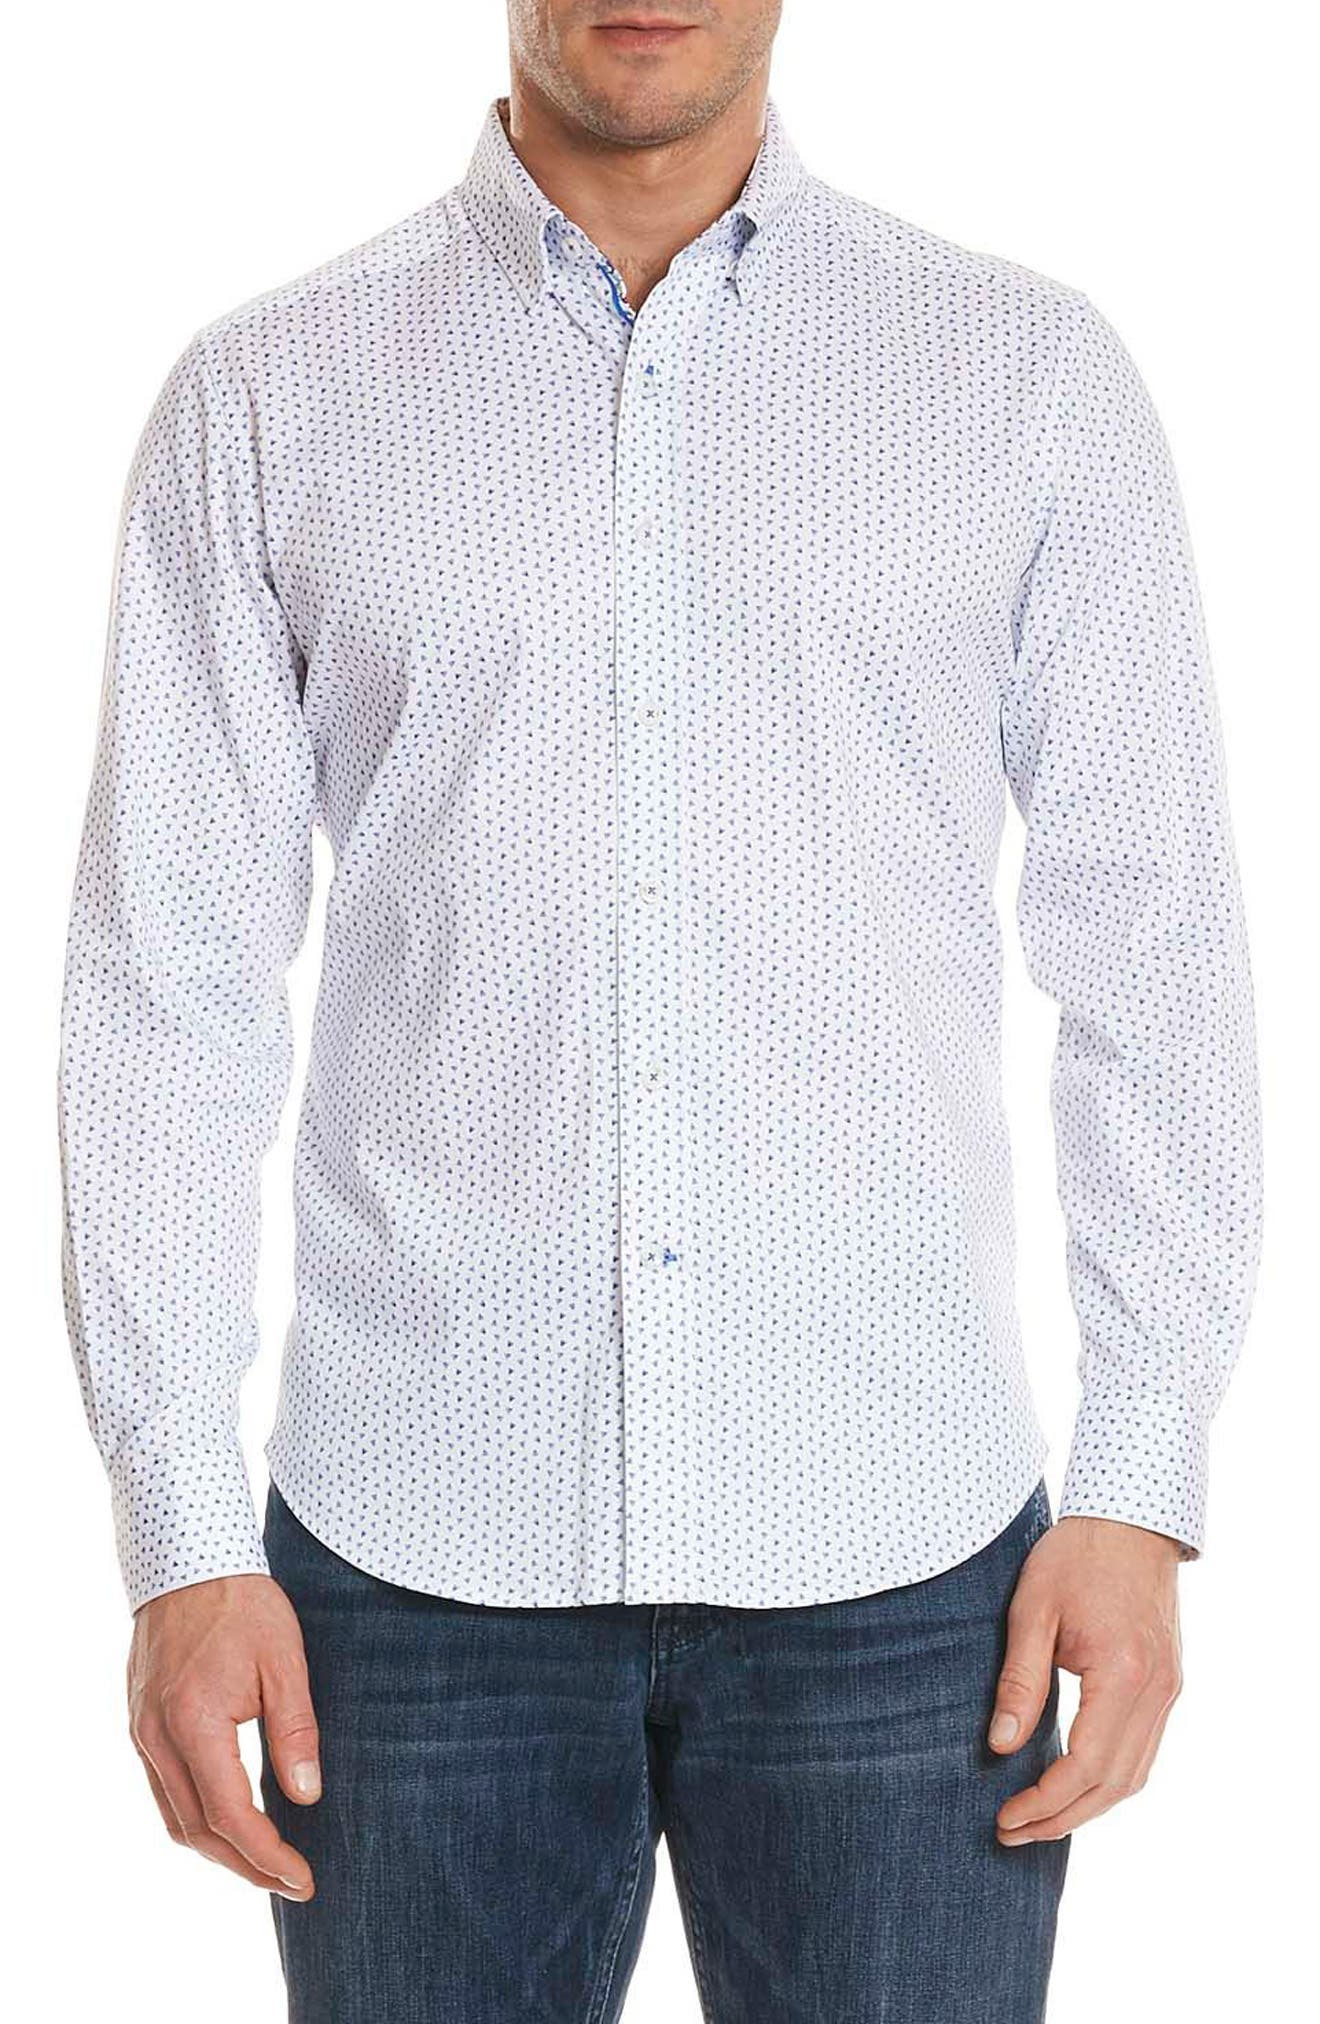 ROBERT GRAHAM Mitchel Tailored Fit Sport Shirt, Main, color, 400